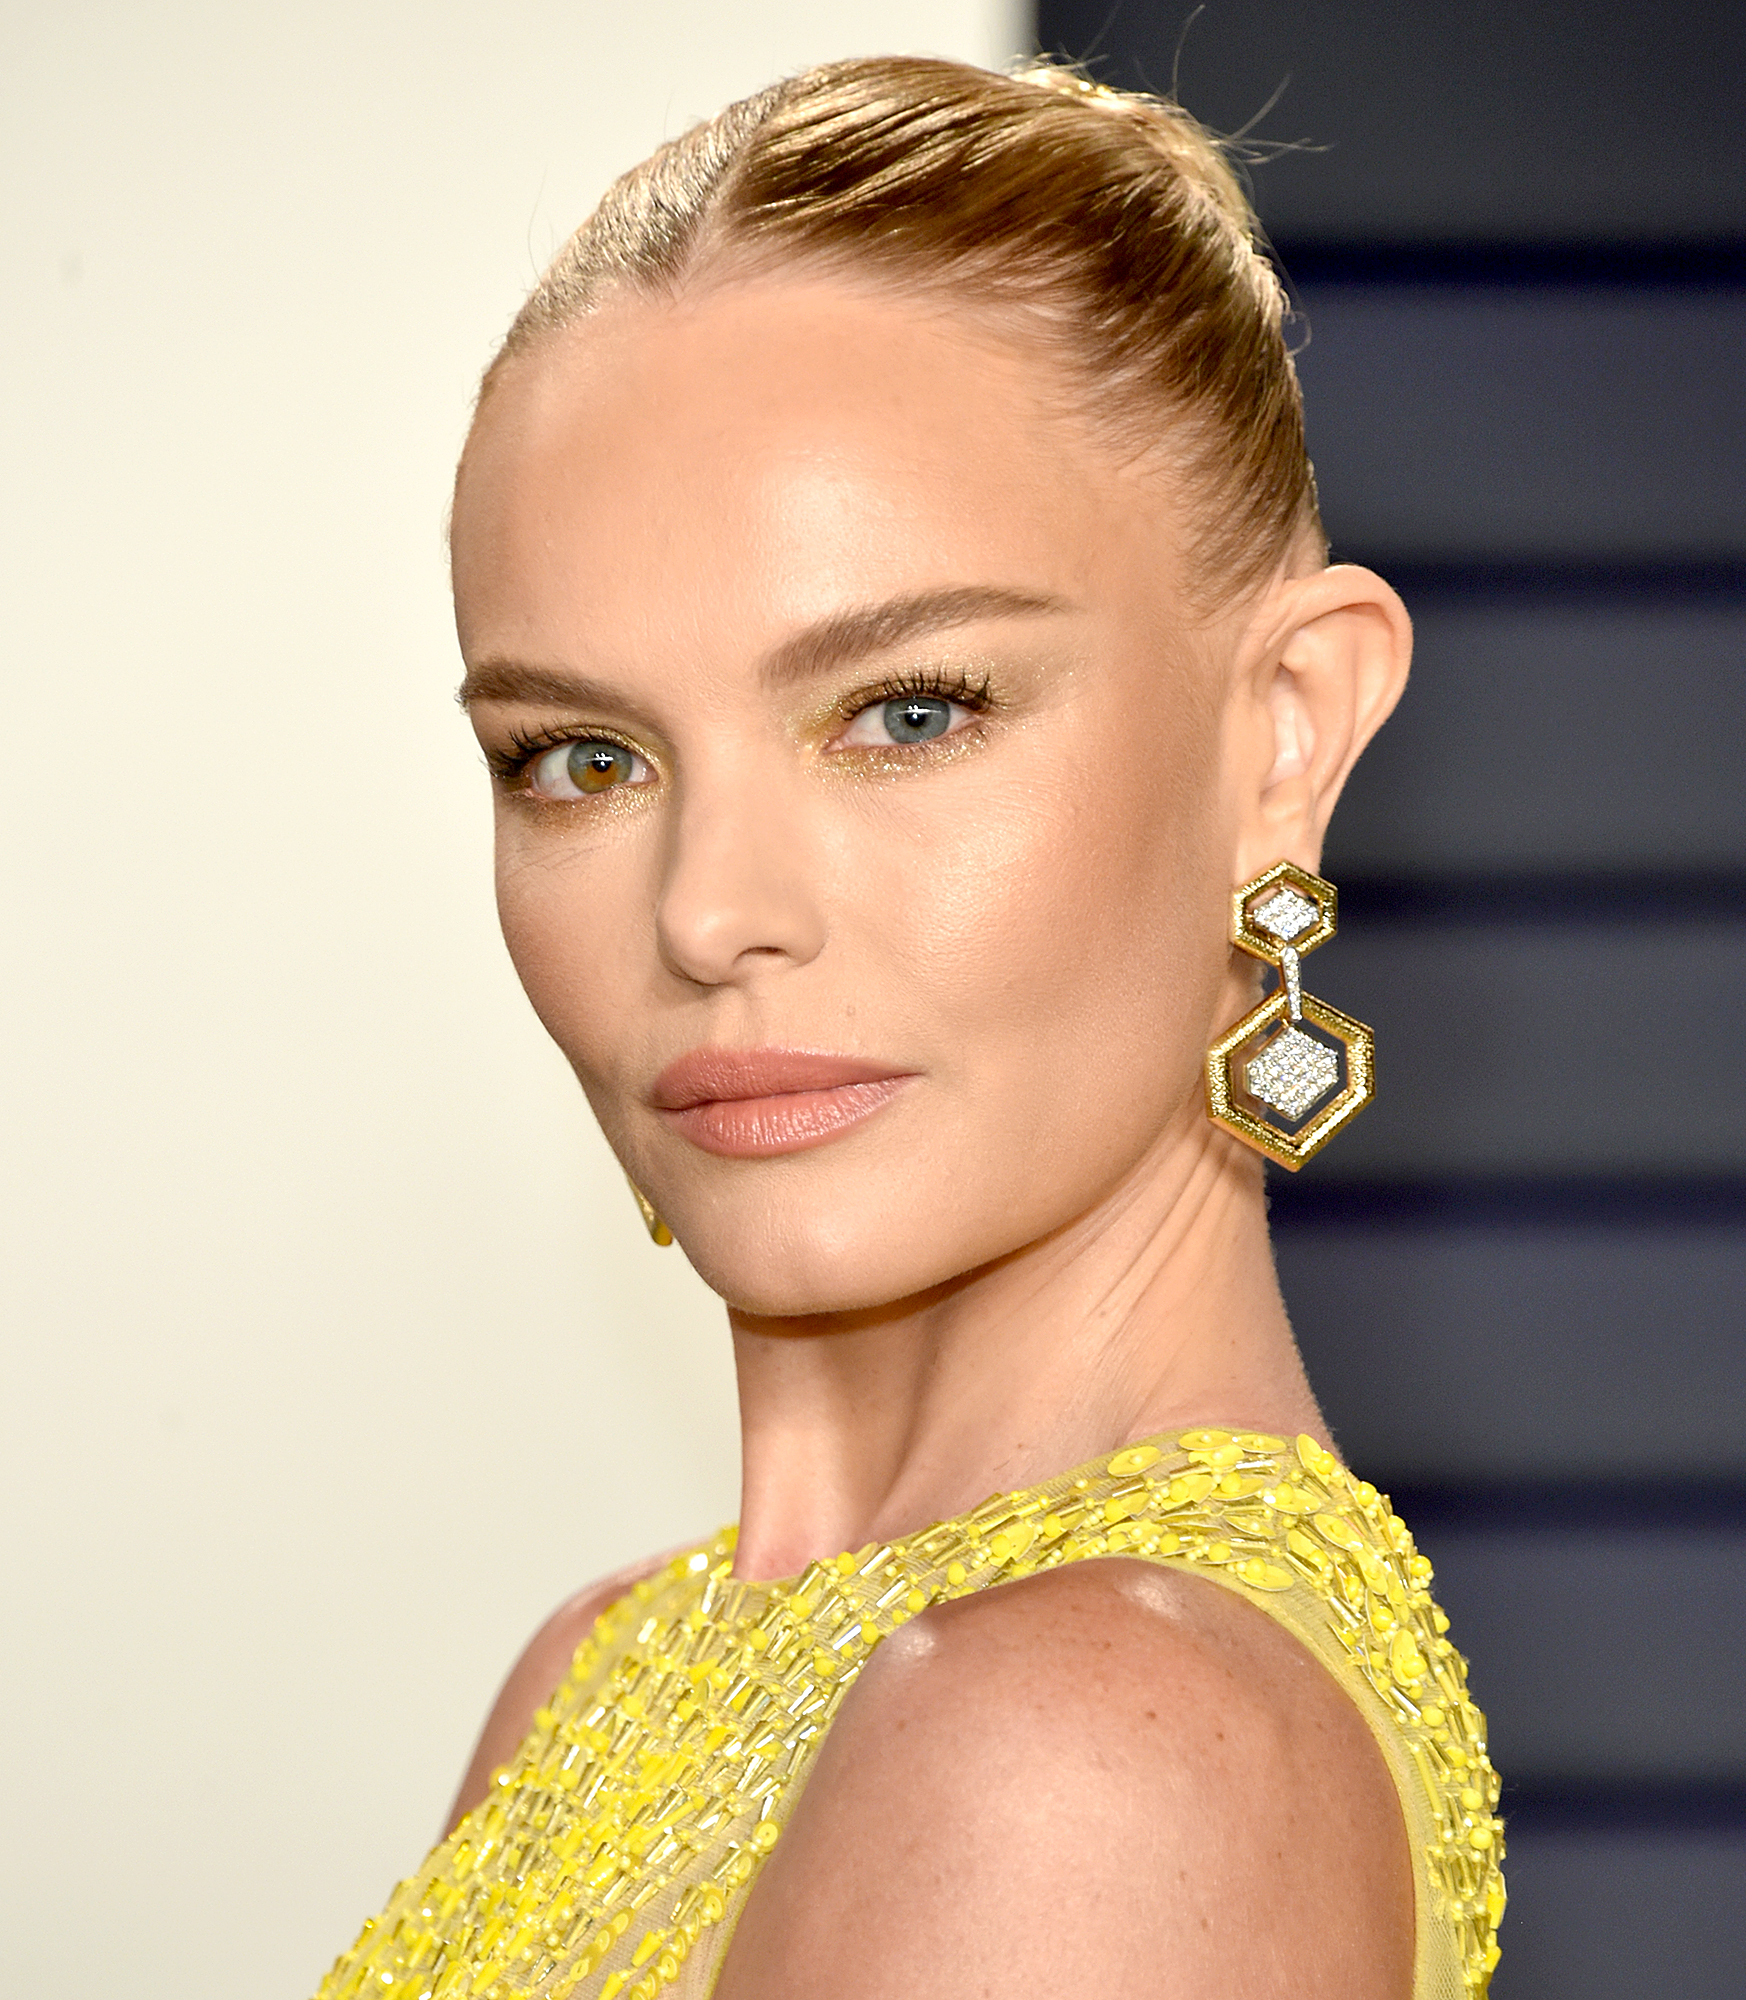 kate-bosworth-oscars-lipstick - Kate Bosworth attends the 2019 Vanity Fair Oscar Party hosted by Radhika Jones at Wallis Annenberg Center for the Performing Arts on February 24, 2019 in Beverly Hills, California.